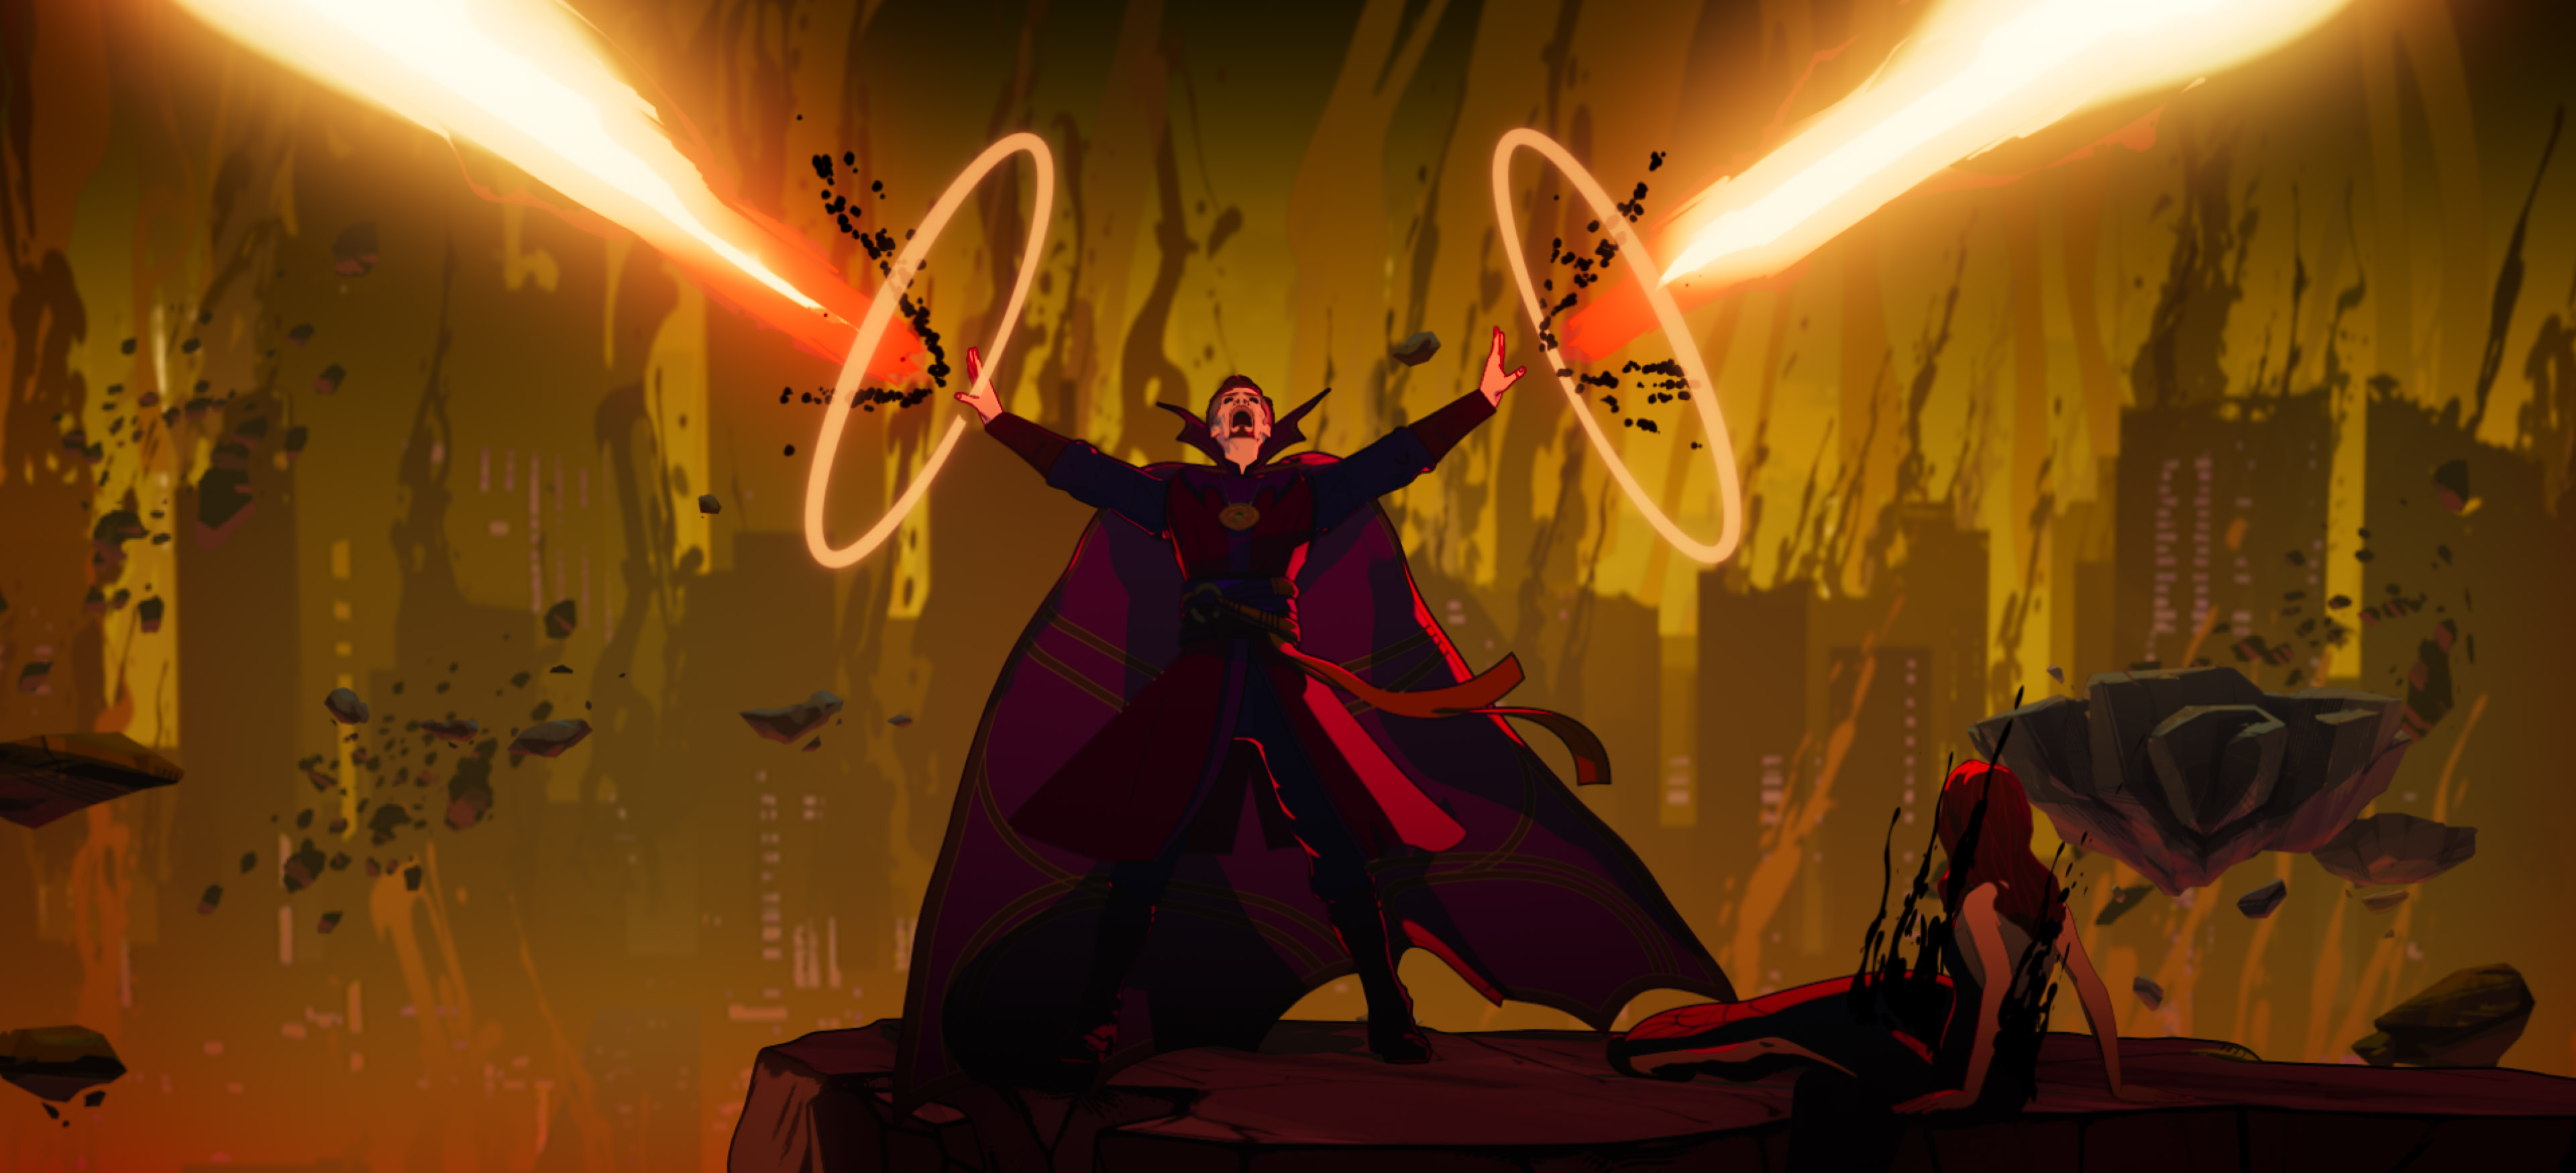 What If... ? episode 4 recap: Doctor Strange goes down a dark path to become Supreme - CNET